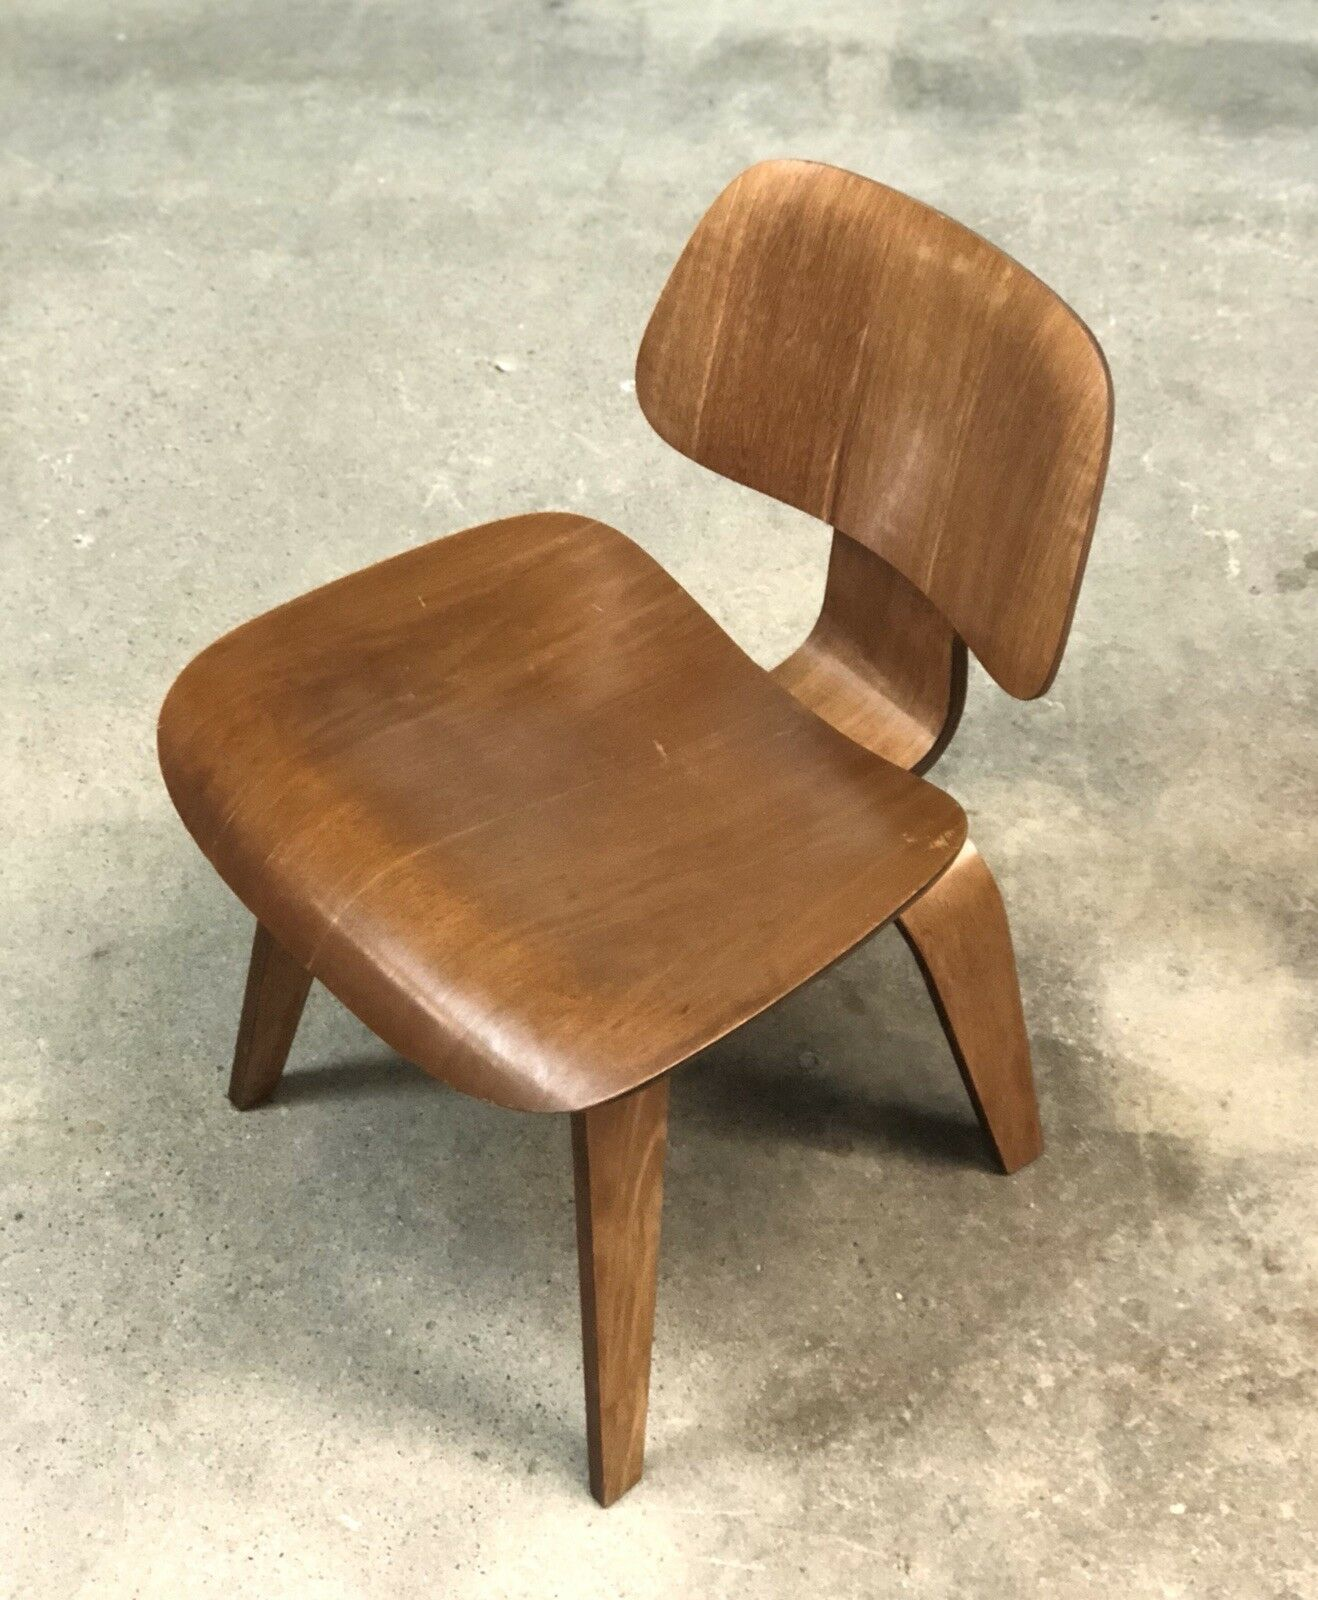 Good After Plus As New Even Make Yearseames Chairs Sixty Look rCxosdBhtQ